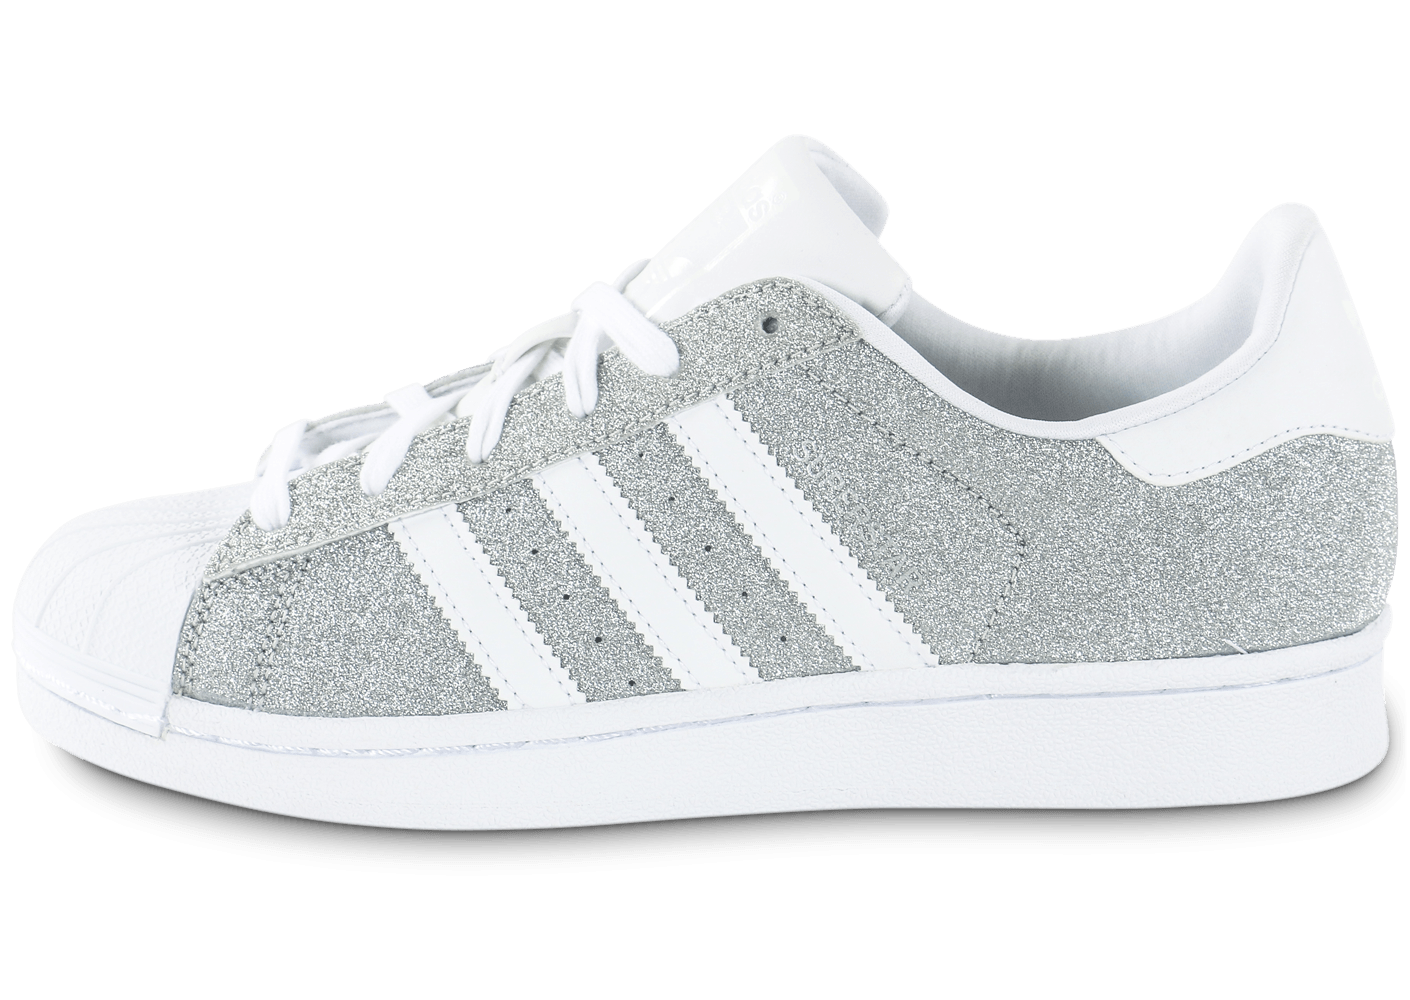 adidas superstar paillettes argent e chaussures homme chausport. Black Bedroom Furniture Sets. Home Design Ideas